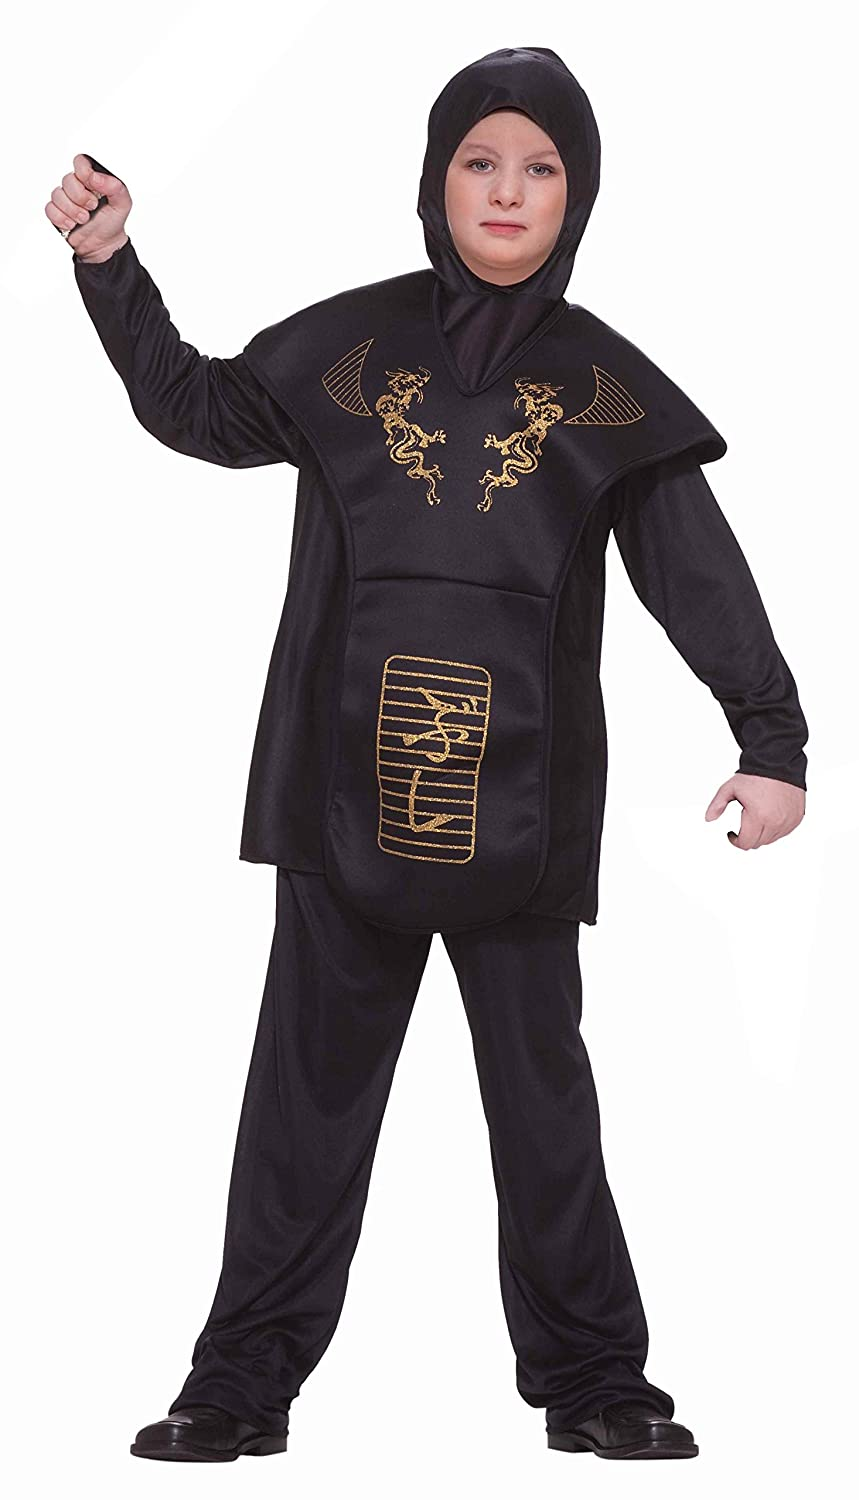 Forum Black Dragon Ninja Costume L: Amazon.es: Juguetes y juegos